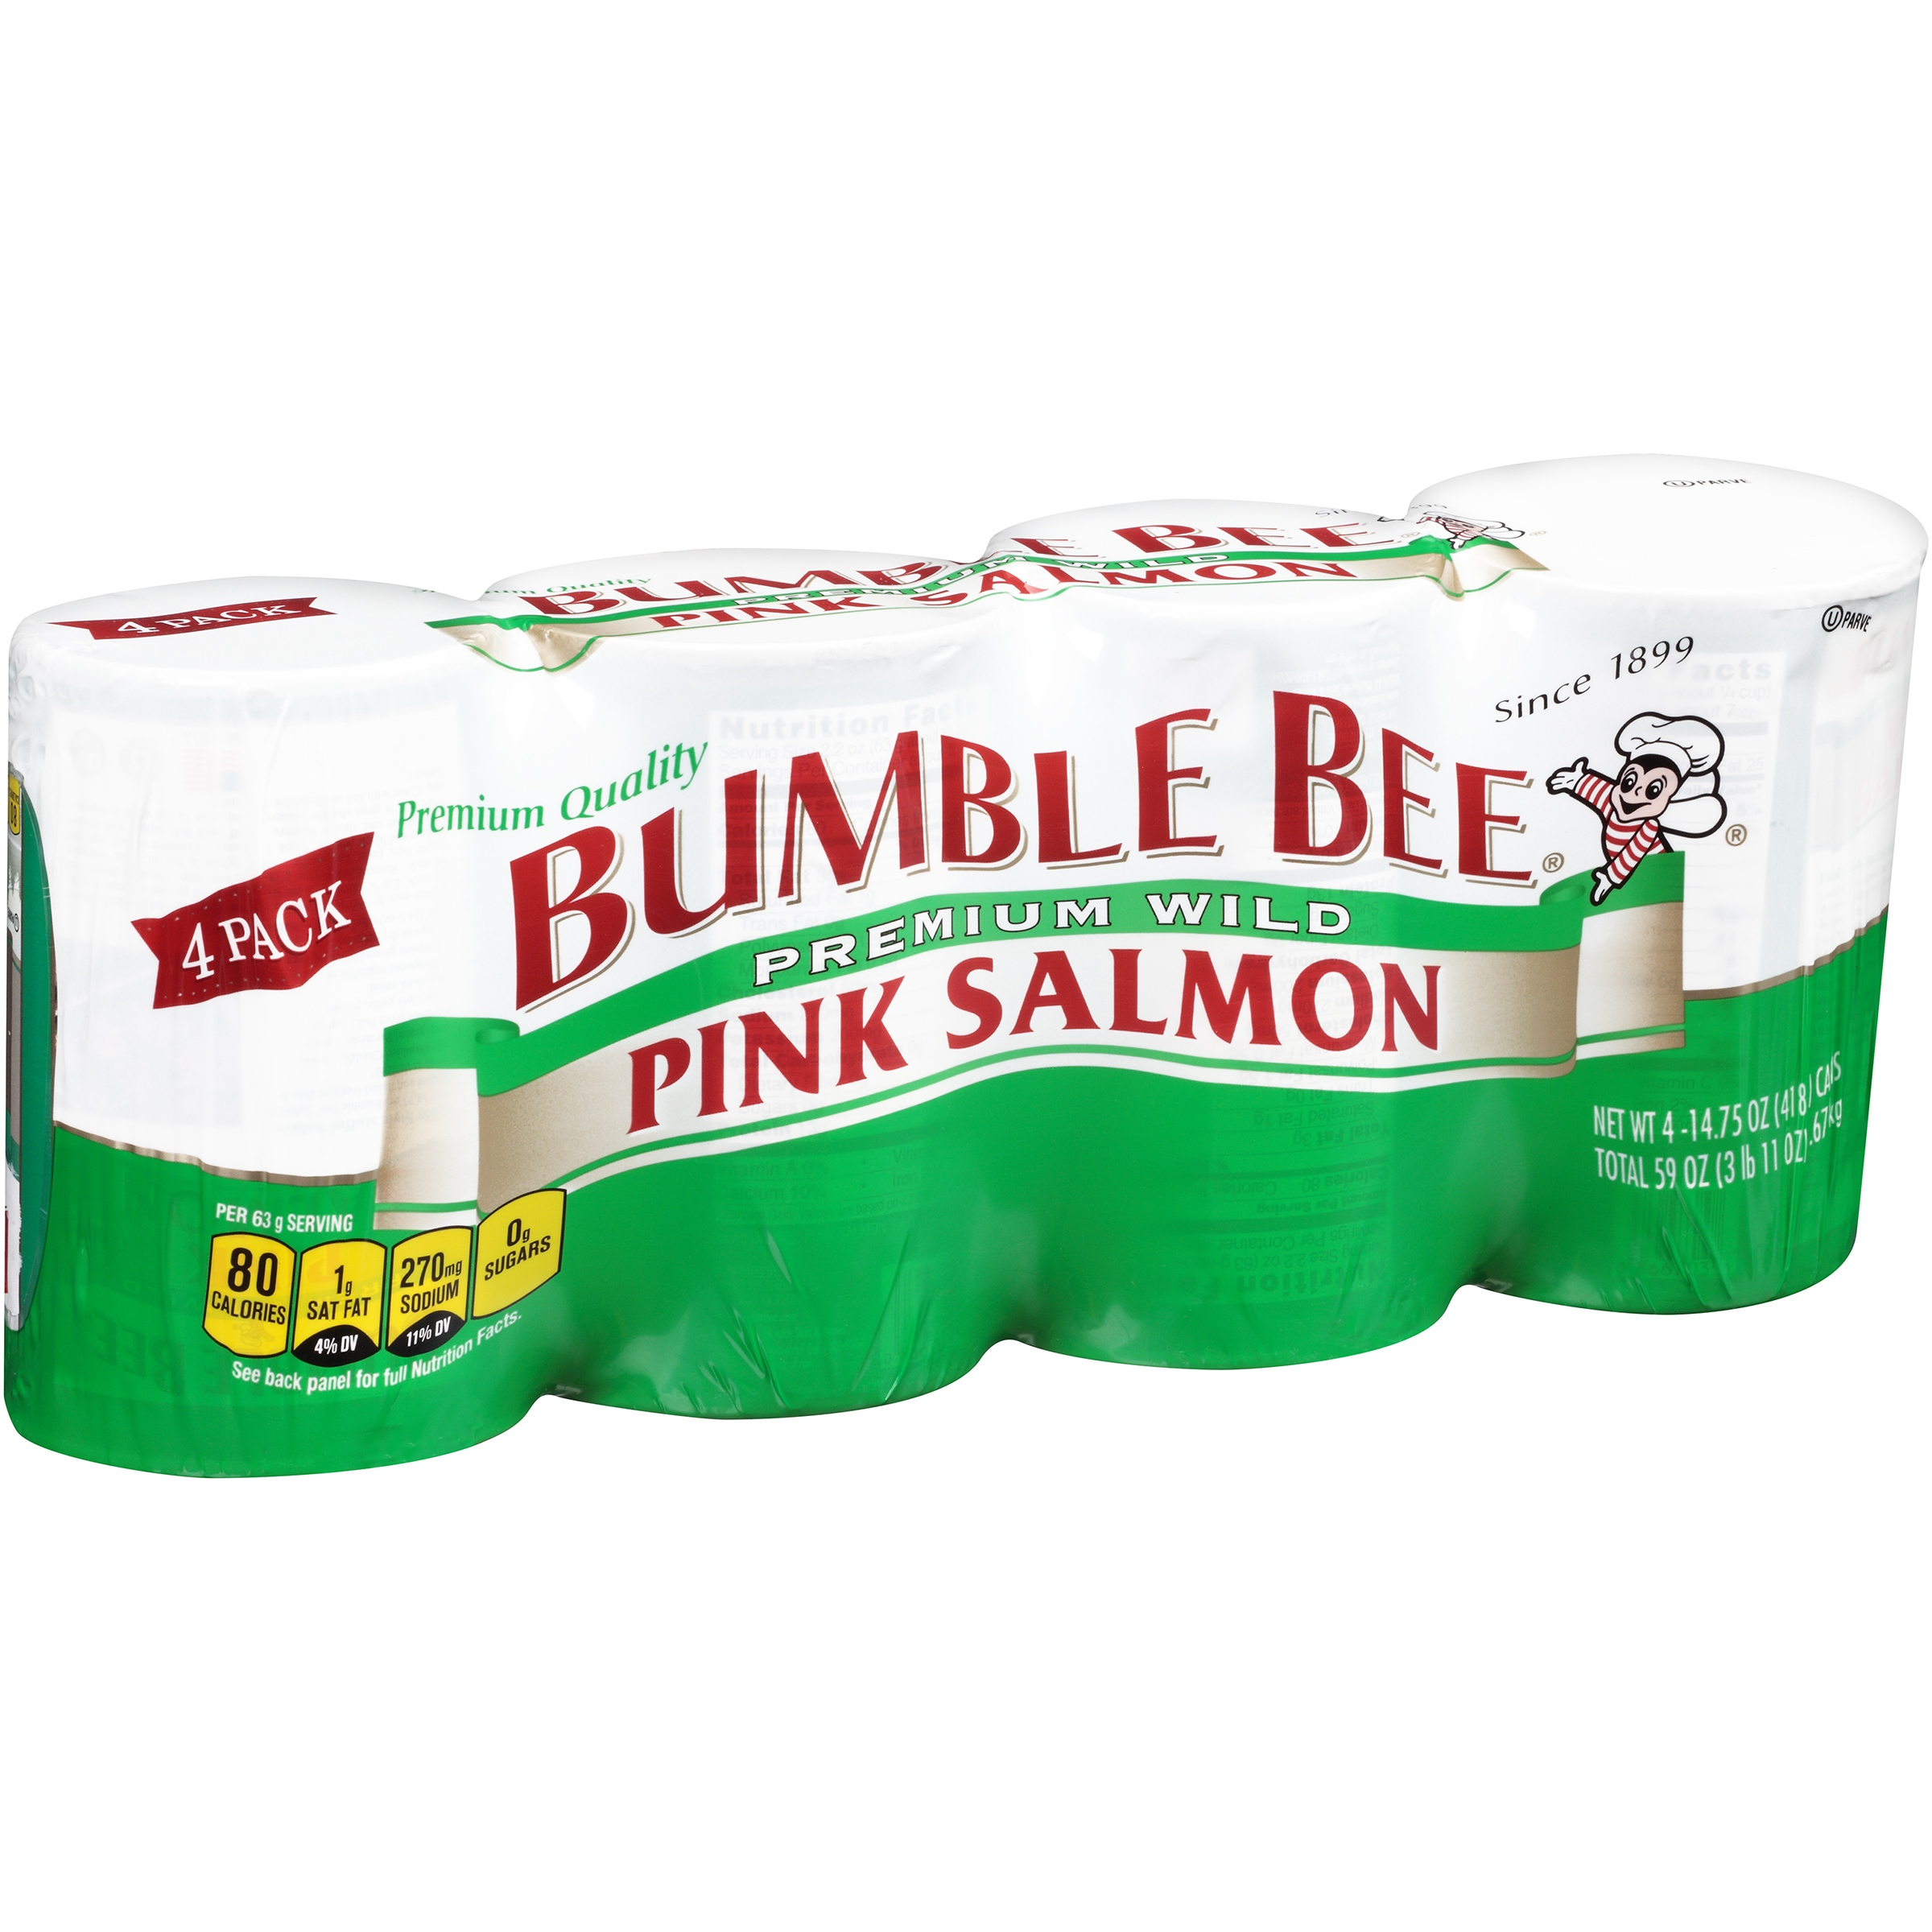 Bumble Bee Wild Pink Salmon, 14.75 oz cans, 4 count by Bumble Bee Foods